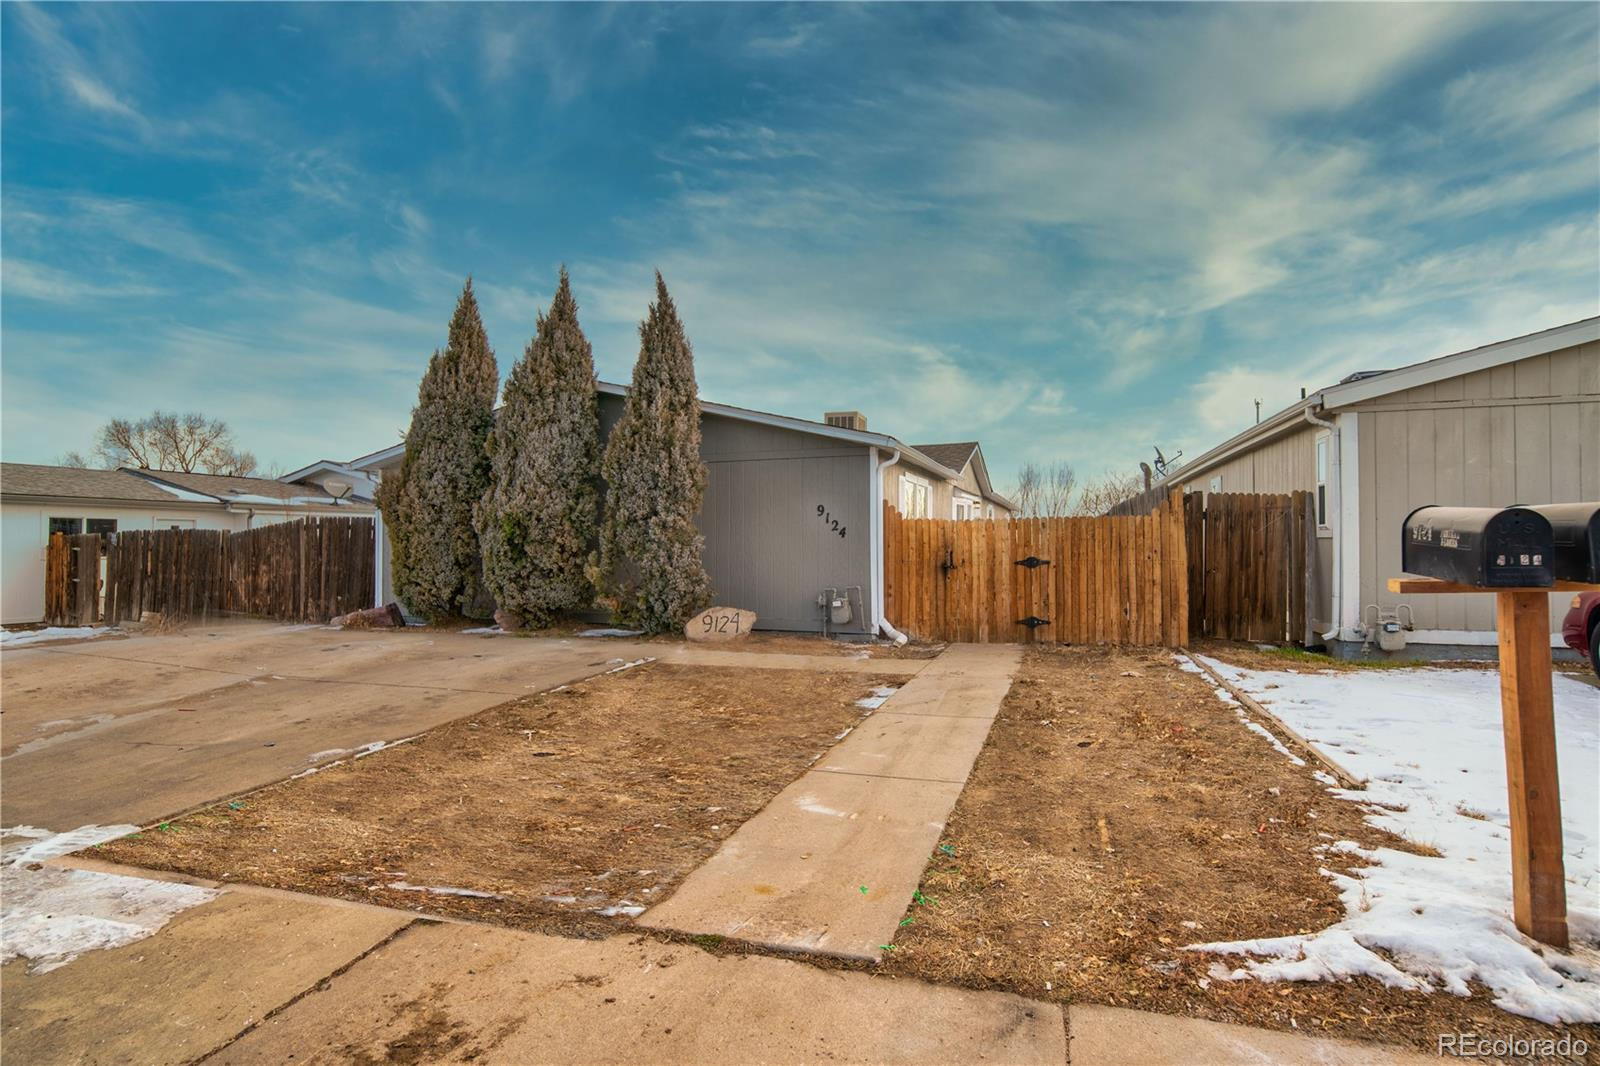 9124 Fontaine Street, Federal Heights, CO 80260 - #: 6580151